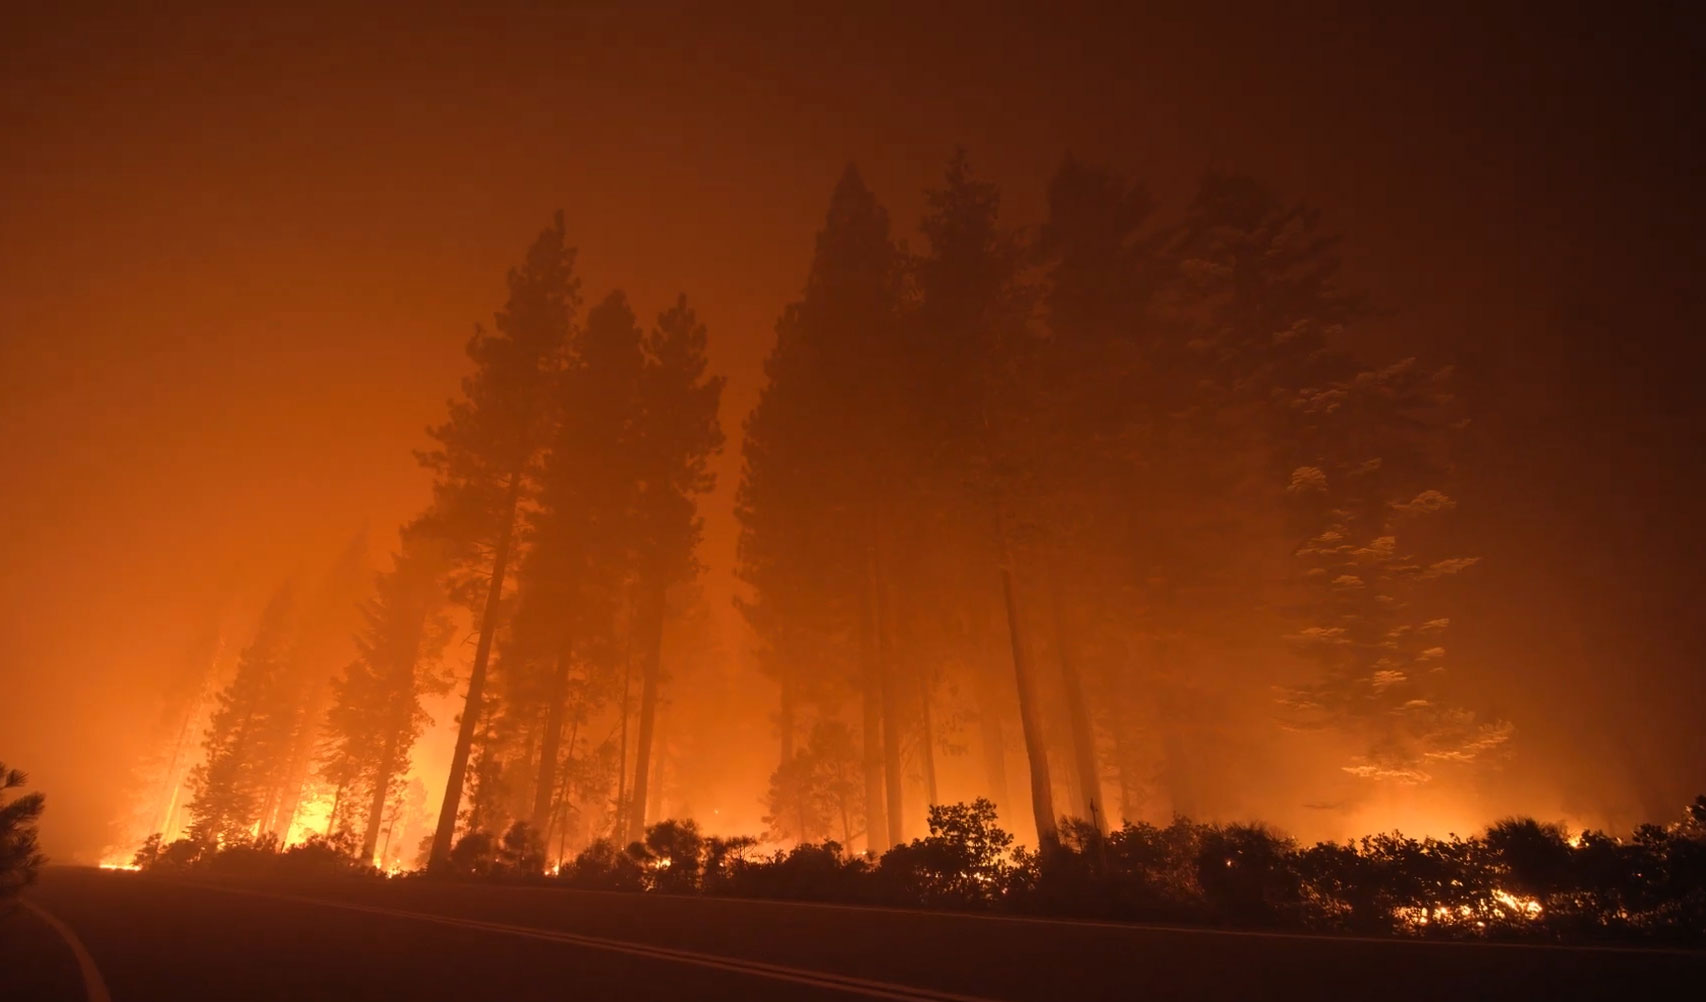 Subaru Uses Dramatic Footage of the California Wildfires to Announce Re-Foresting Project | Muse by Clio